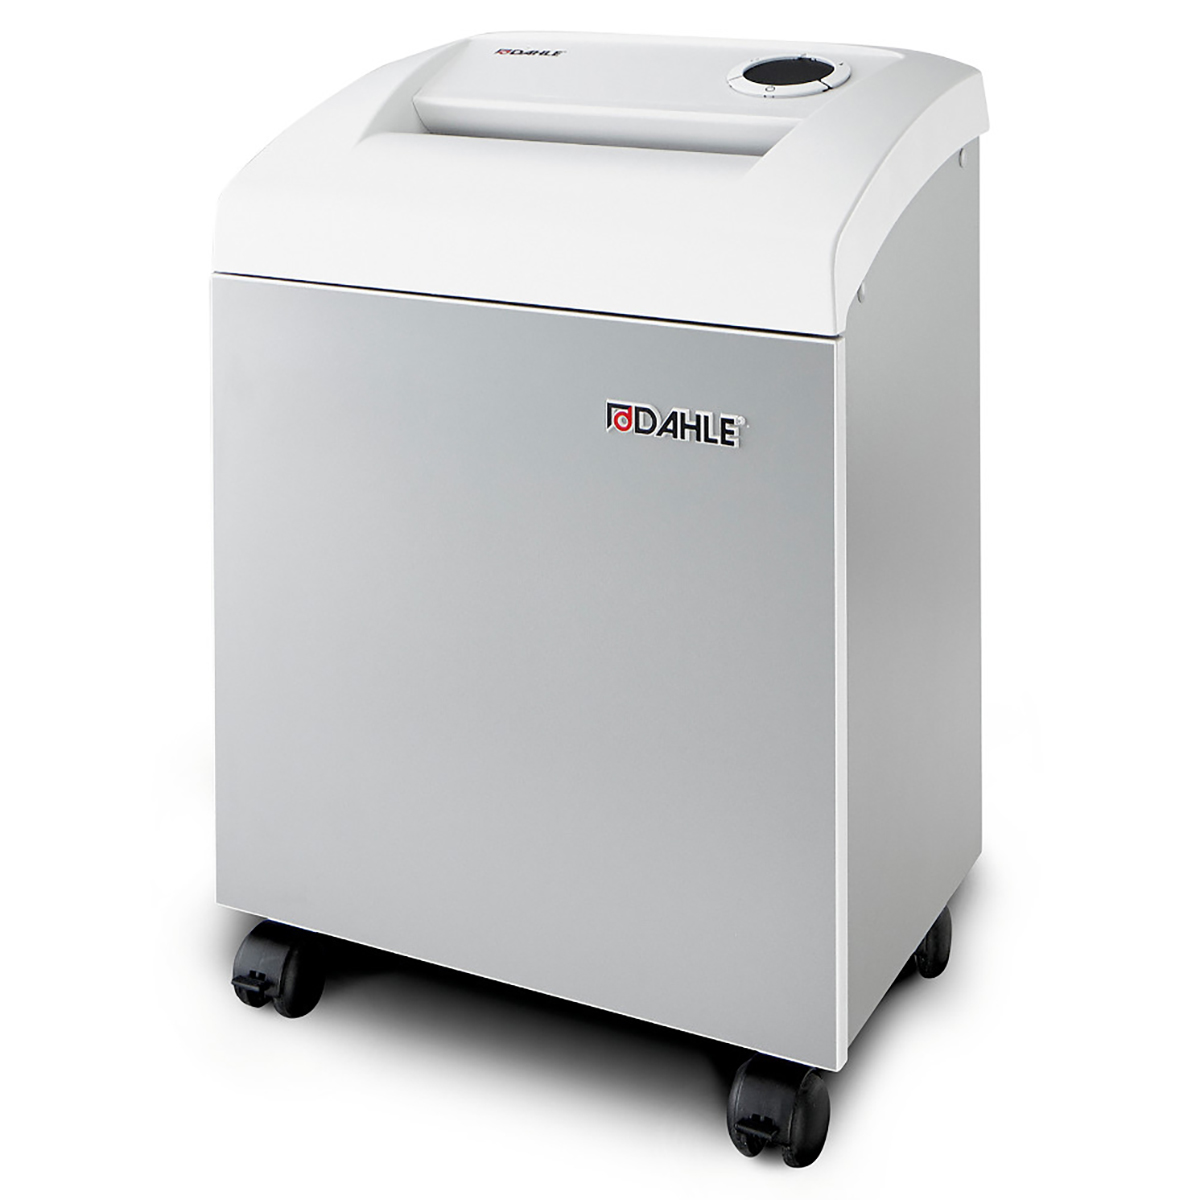 Dahle 404 Clean Tec Professional Cross cut Shredder